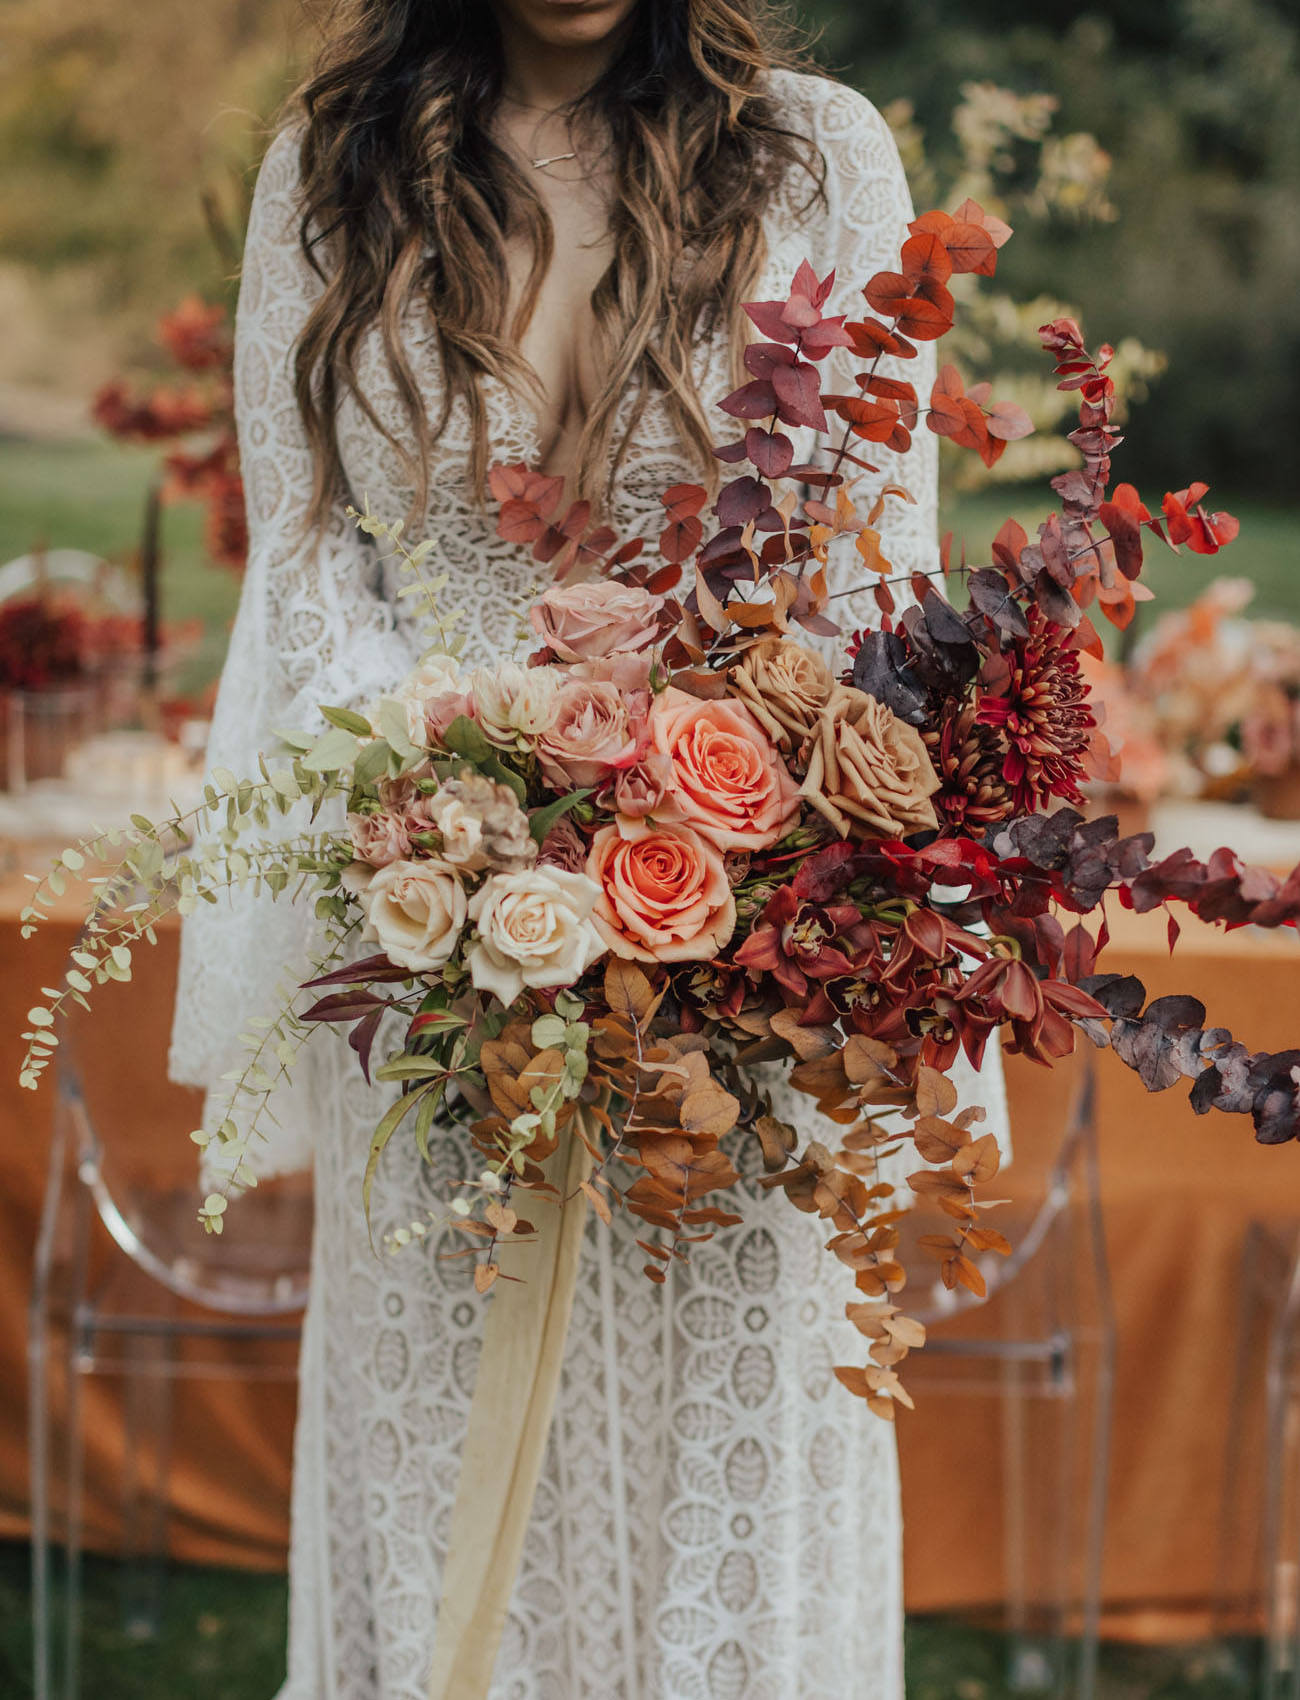 The gorgeous bridal bouquet was done with dried and fresh foliage, bold blooms and long ribbons